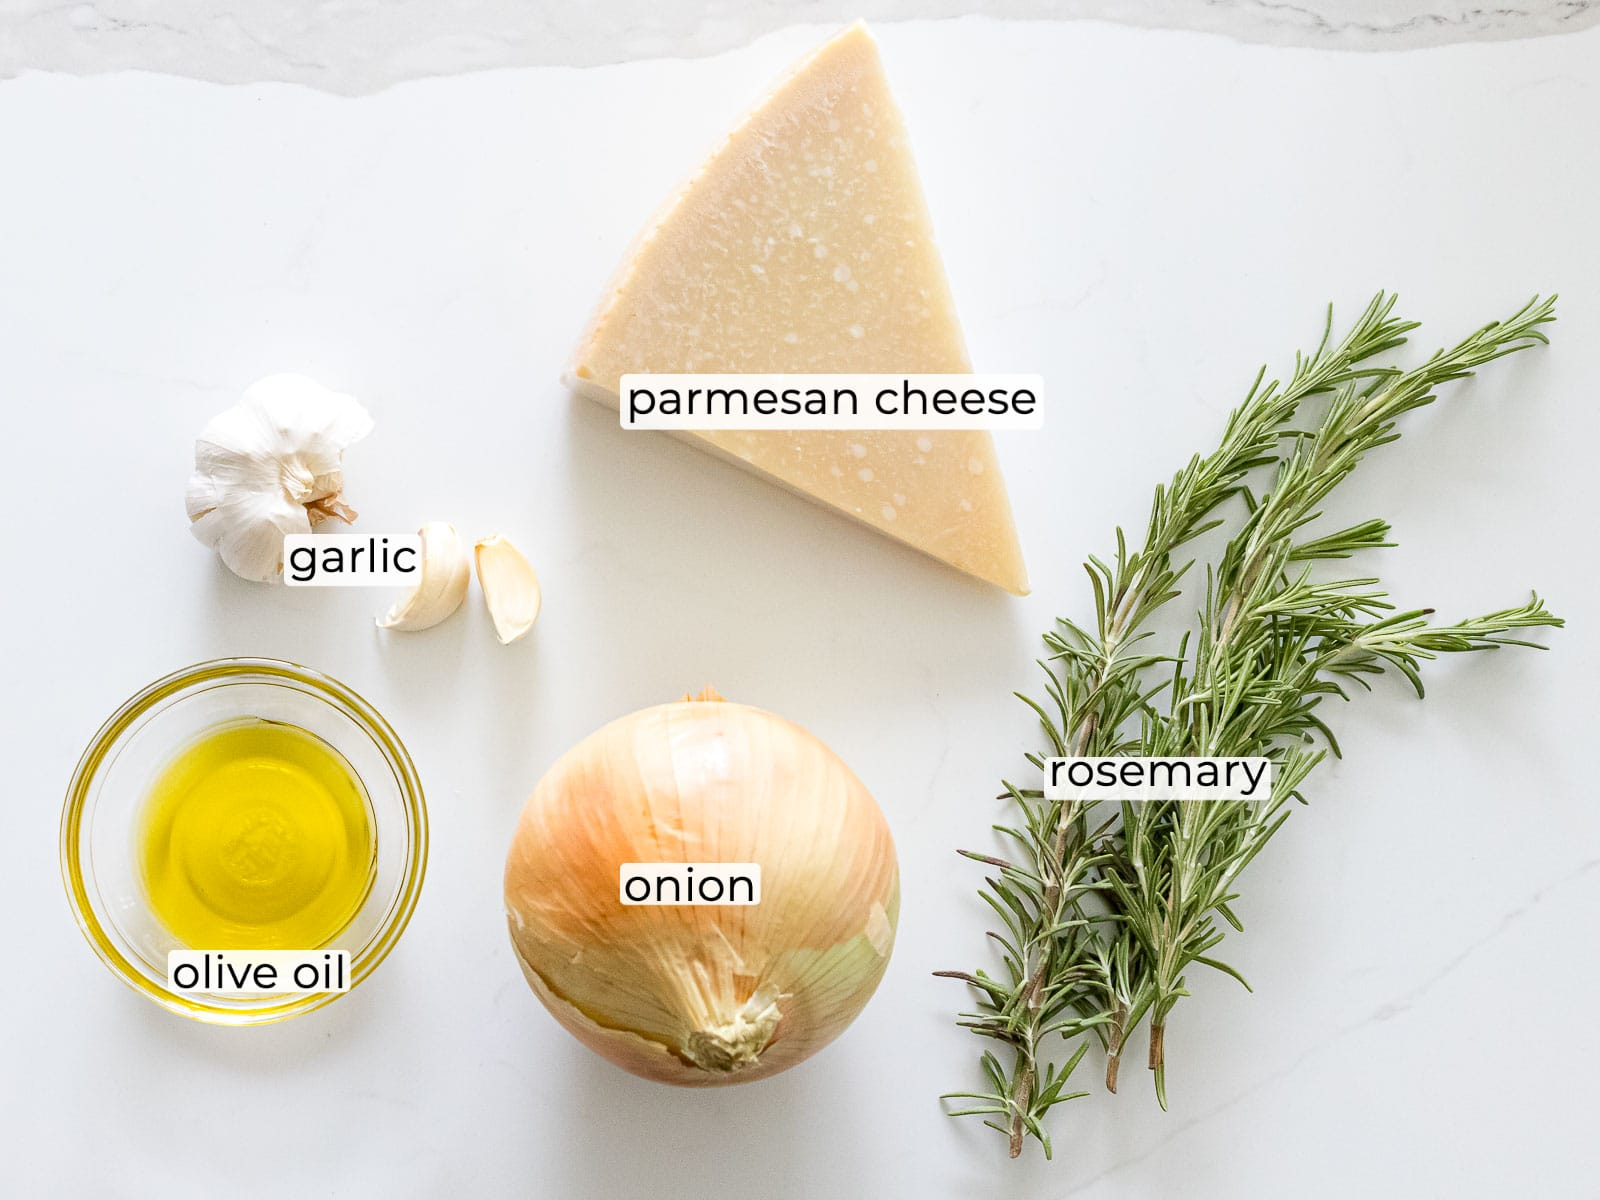 a block of parmesan cheese with rosemary, onion, olive oil, and garlic